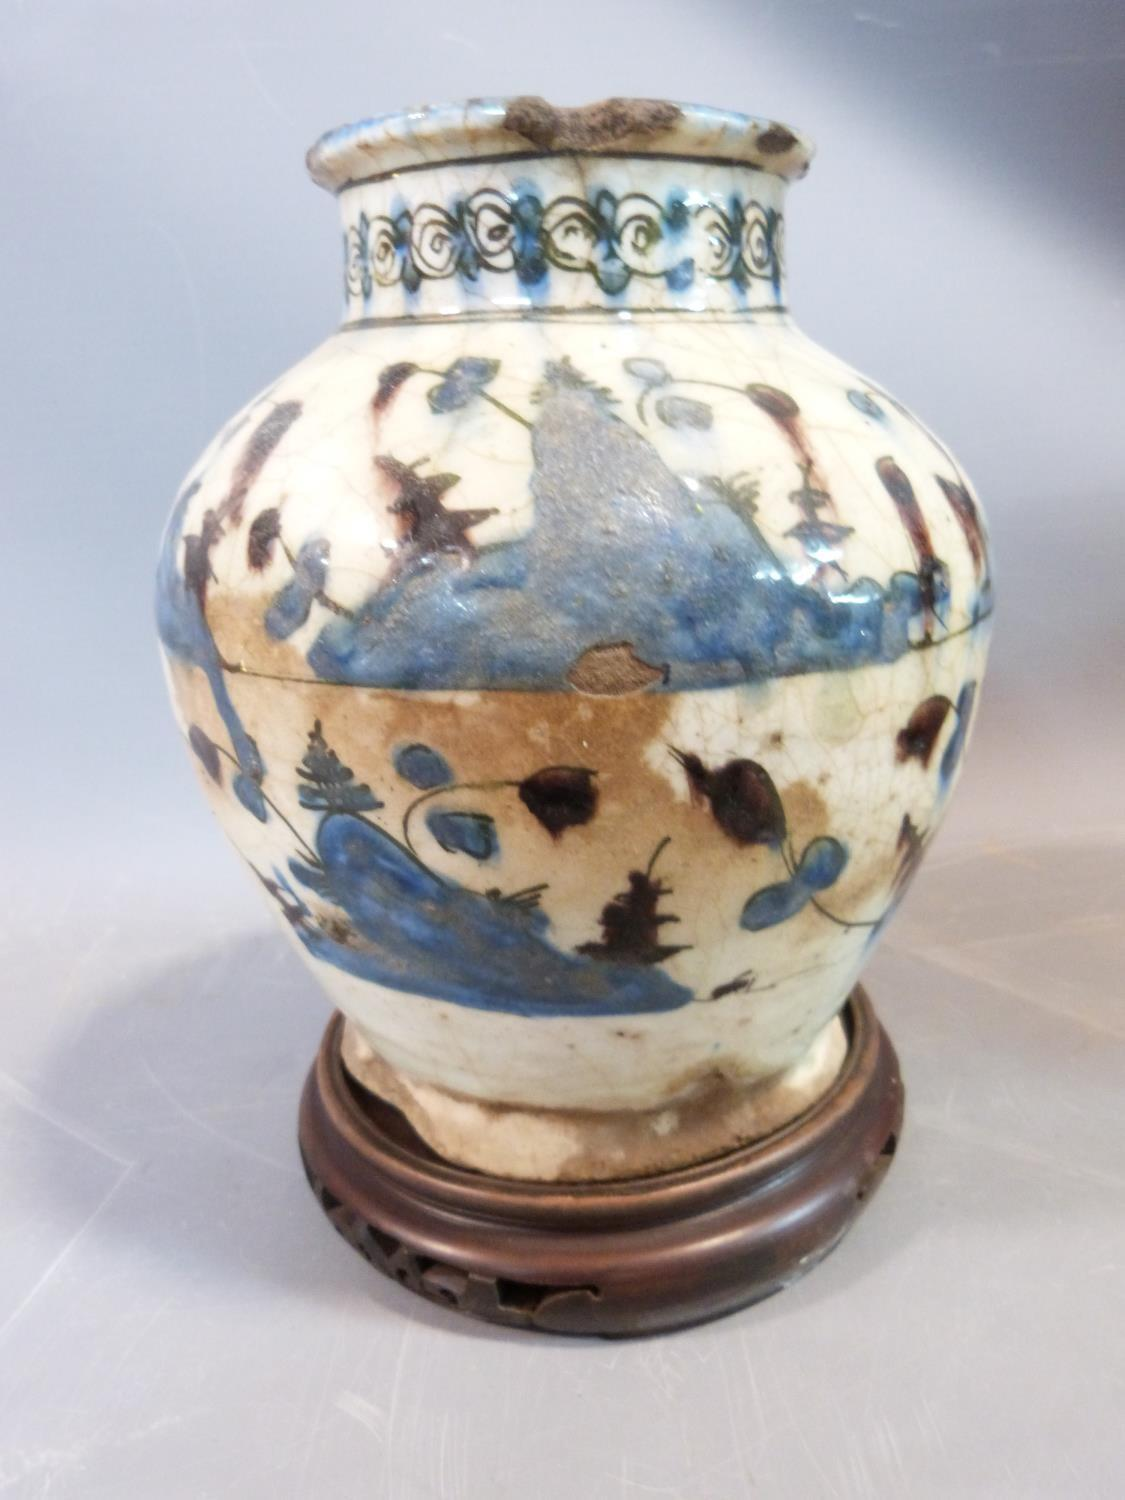 Lot 25 - A middle eastern ceramic glazed vase on carved wooden Chinese stand. H23cm.